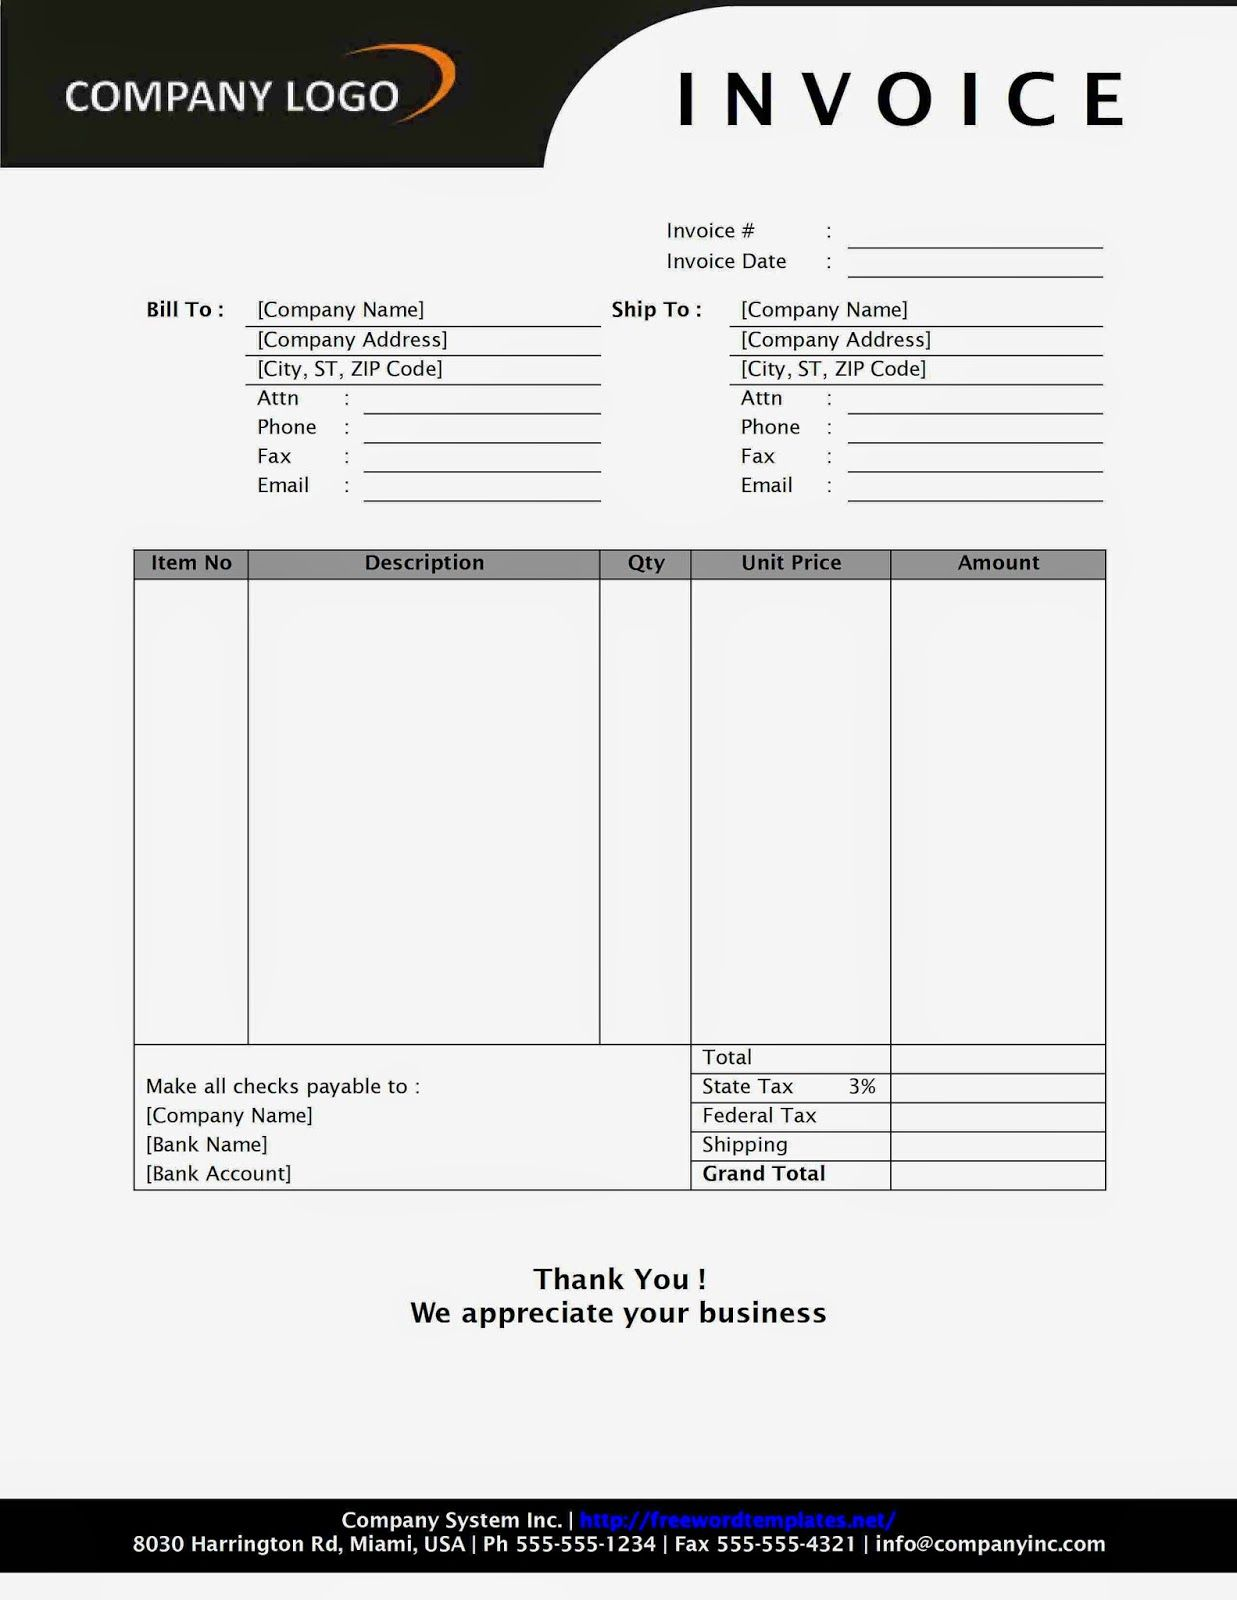 Simple Sales Invoice SD Style Books Worth Reading Pinterest - Invoice template excel free download online store builder